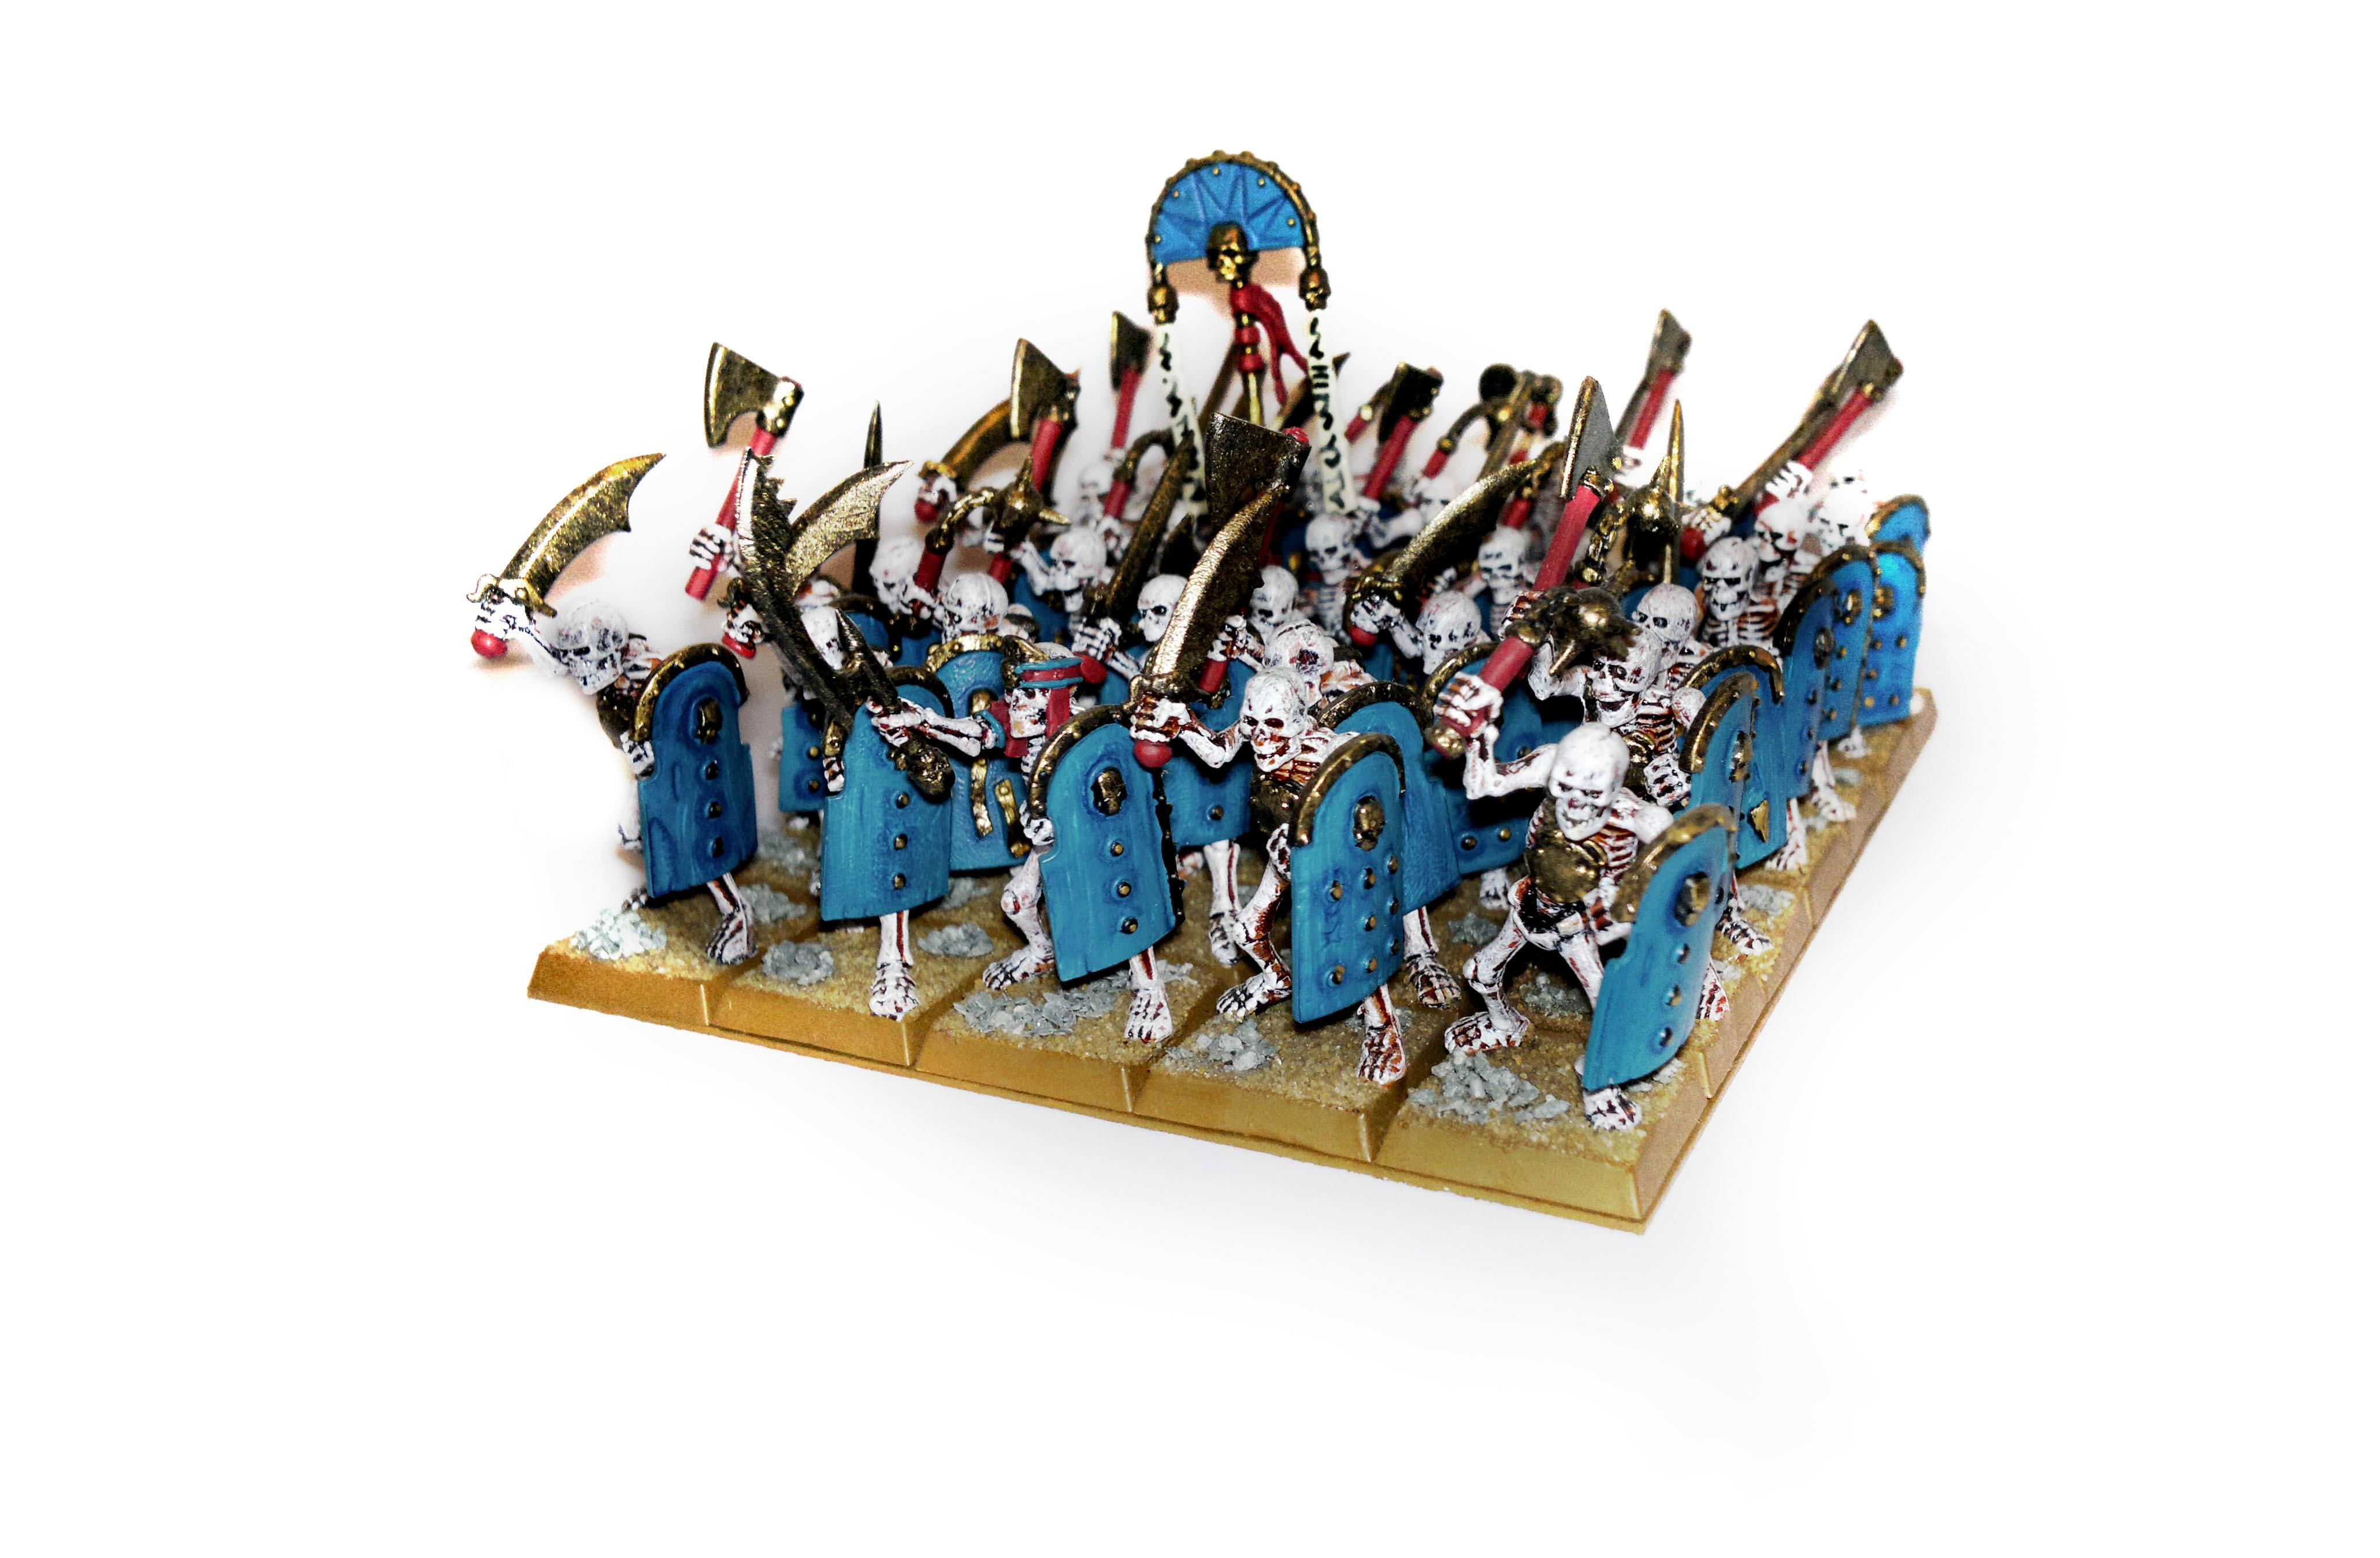 Skeleton Warriors With Hand Weapons